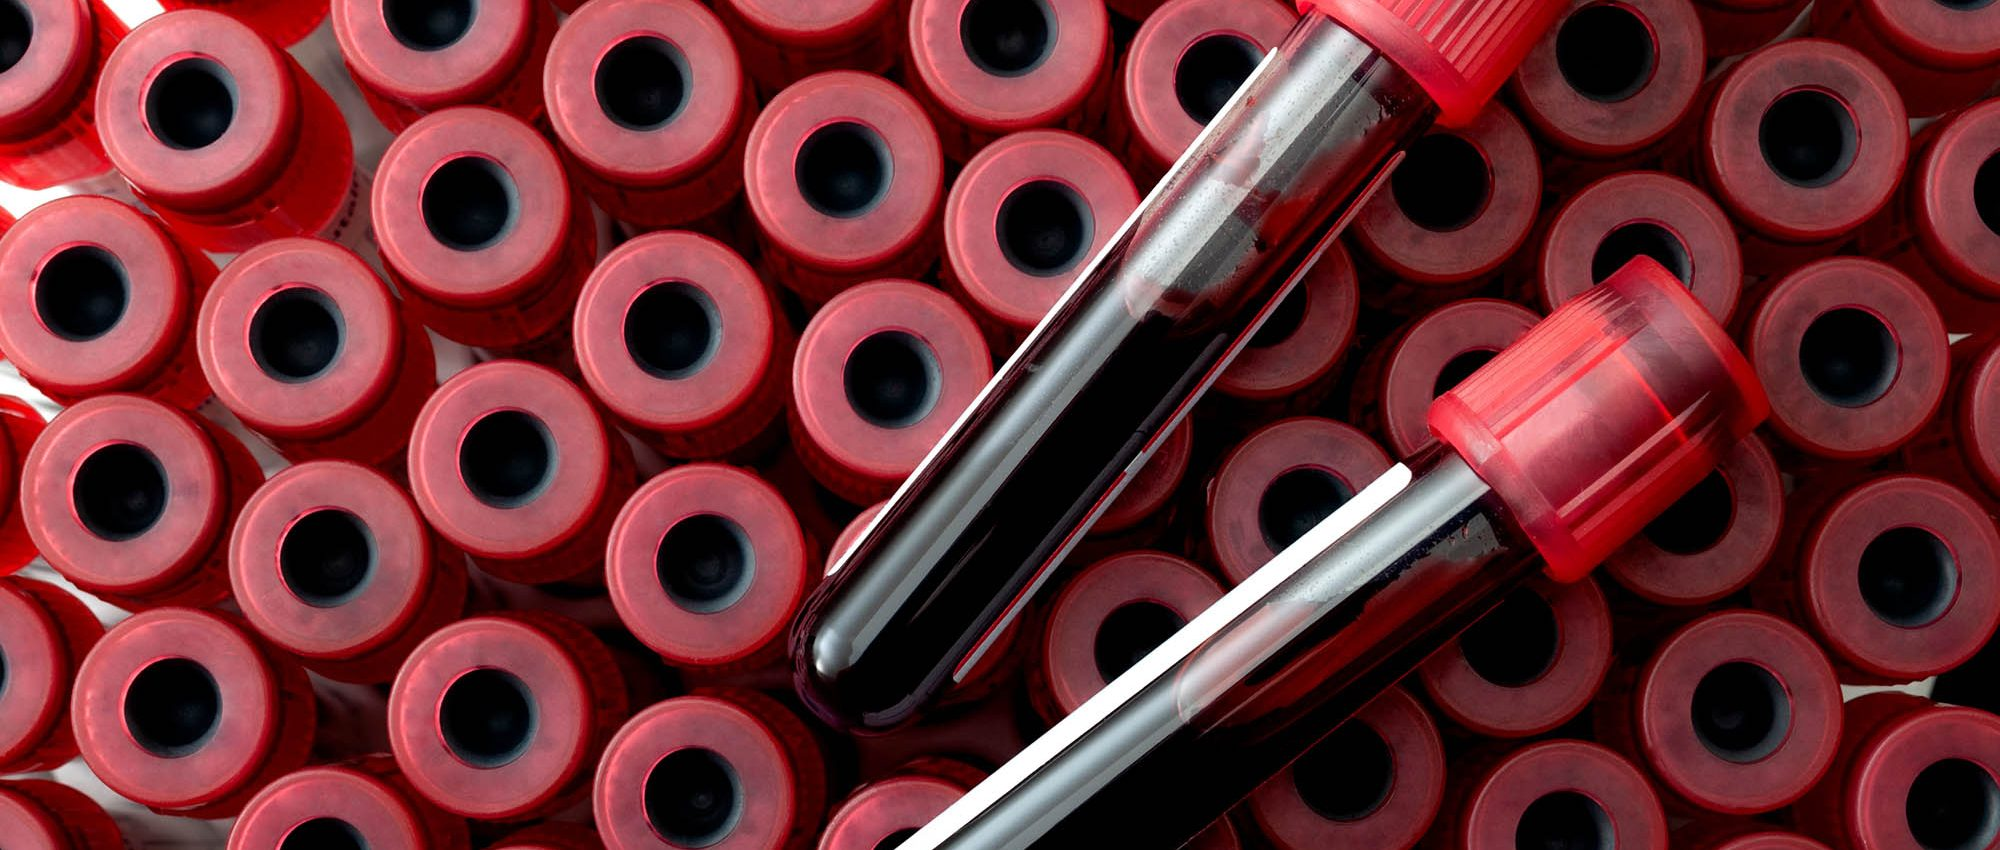 photo of vials of blood Phlebotomy